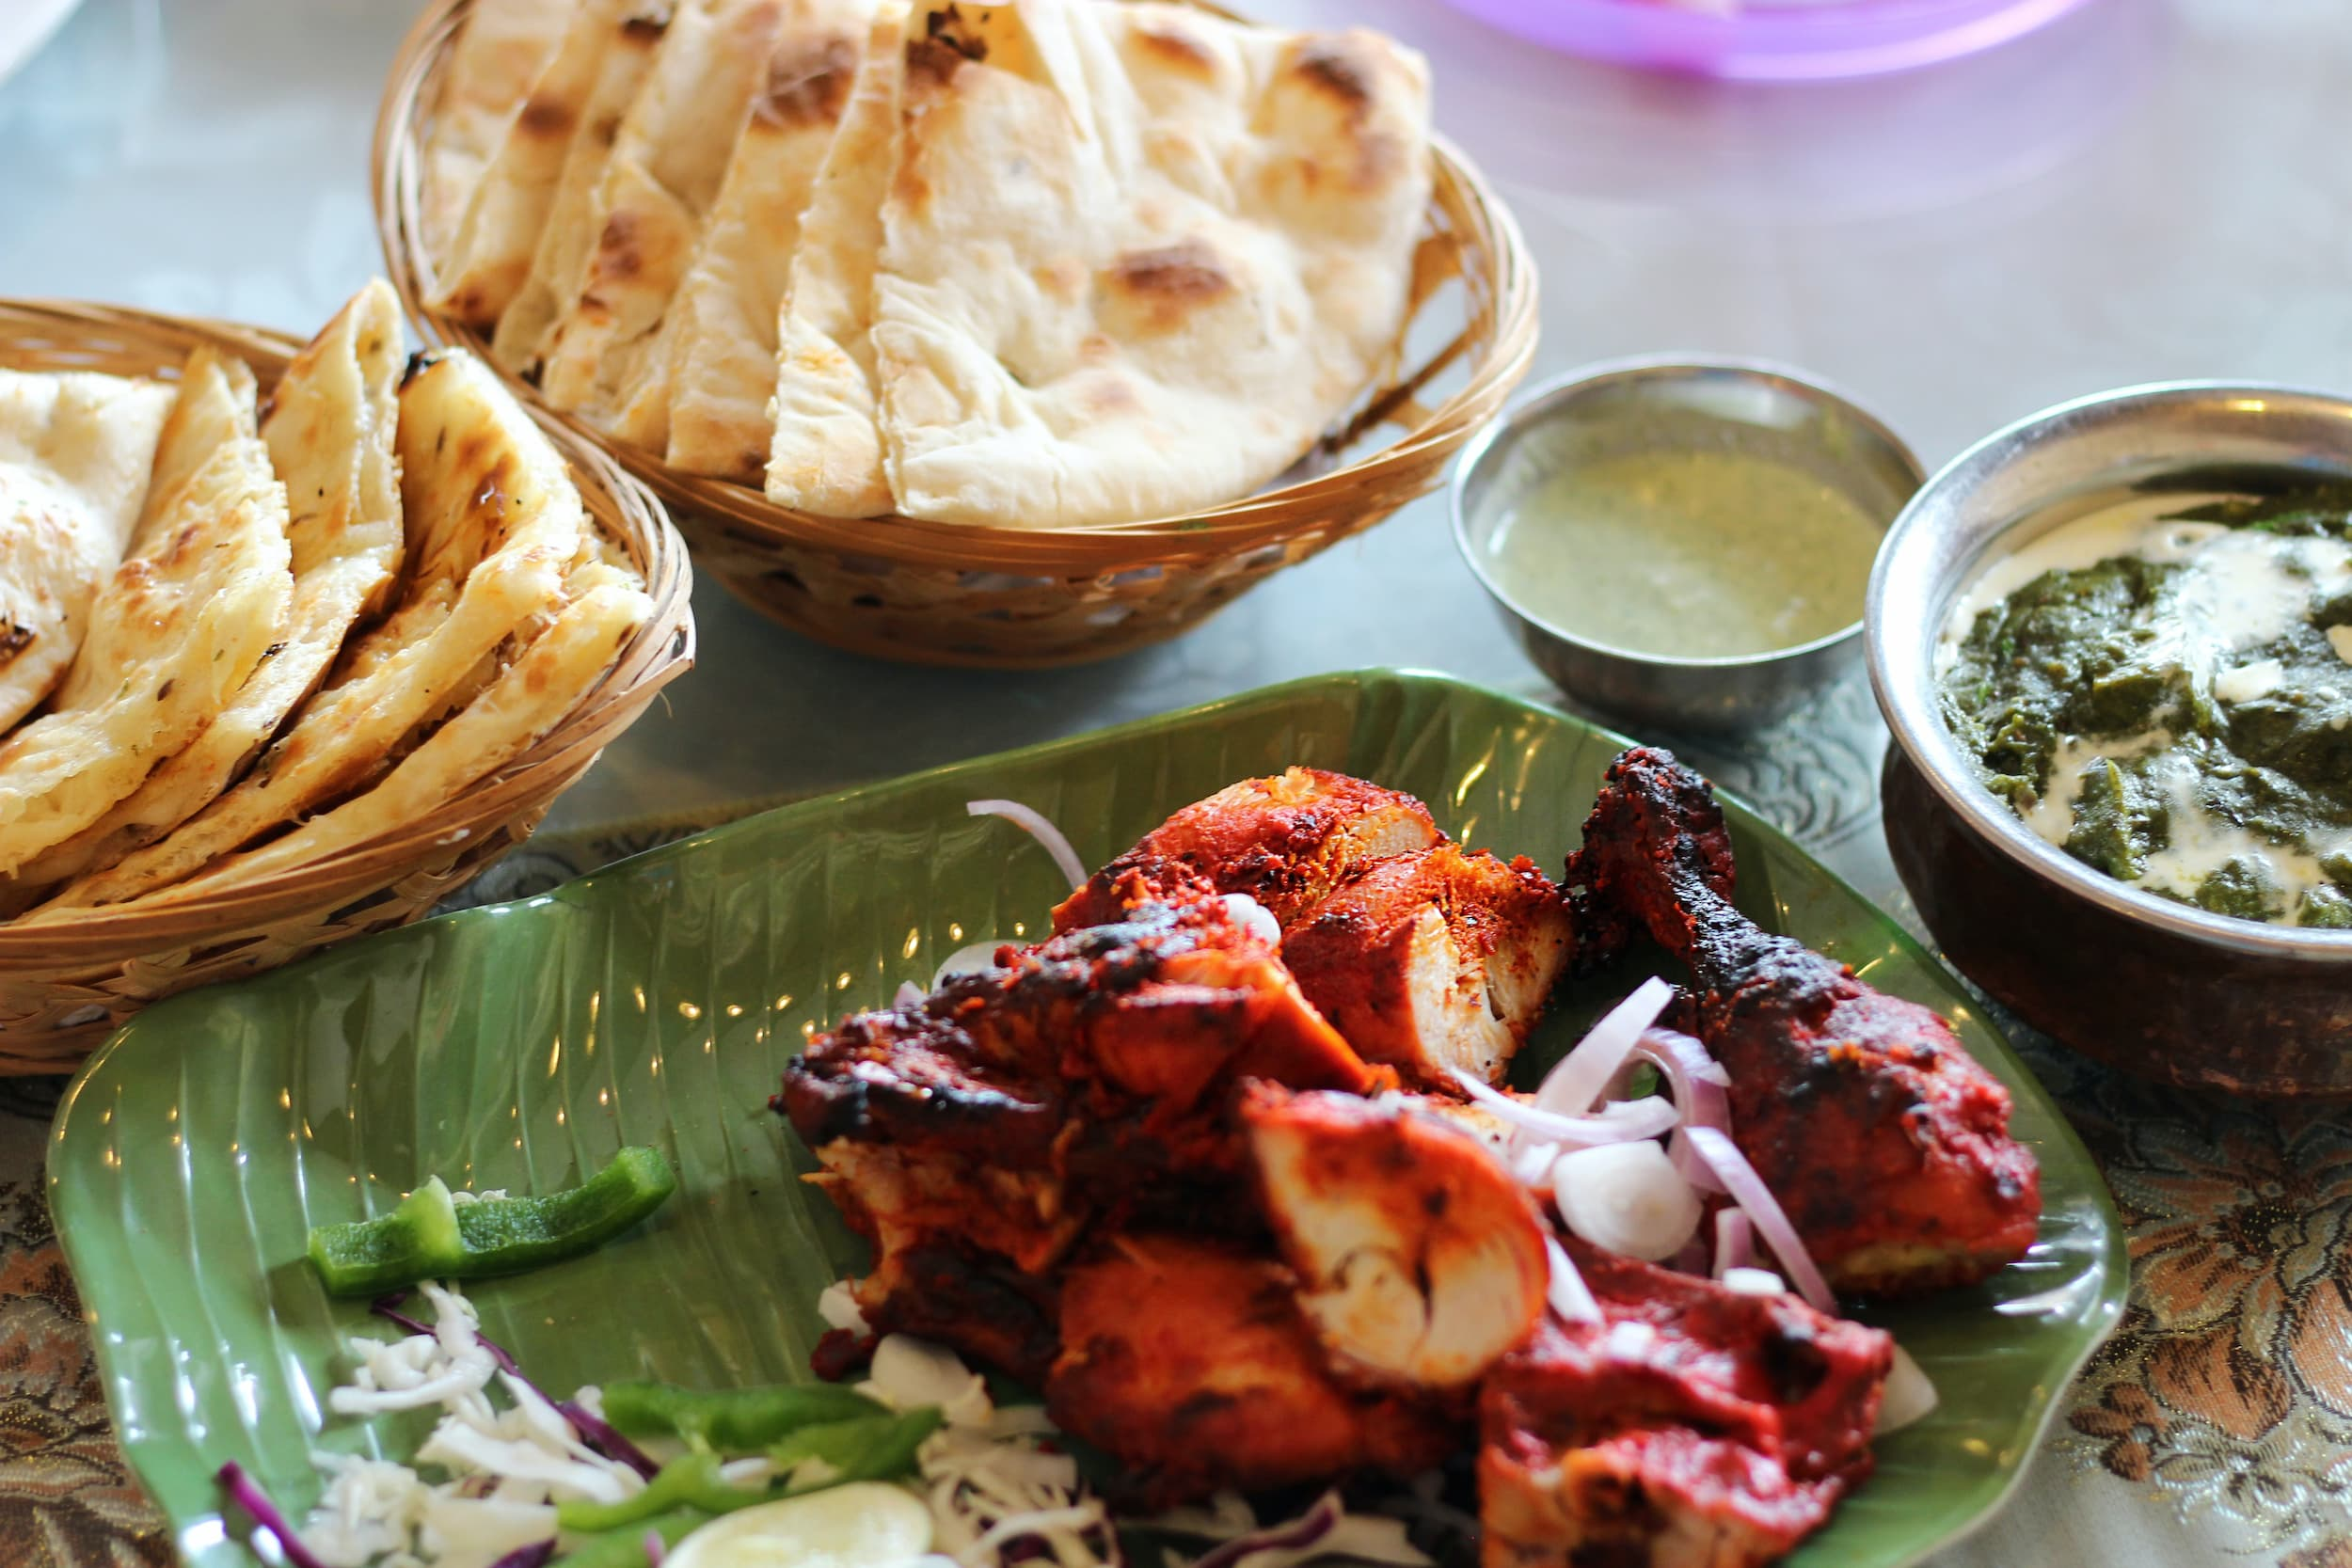 Naan and other food